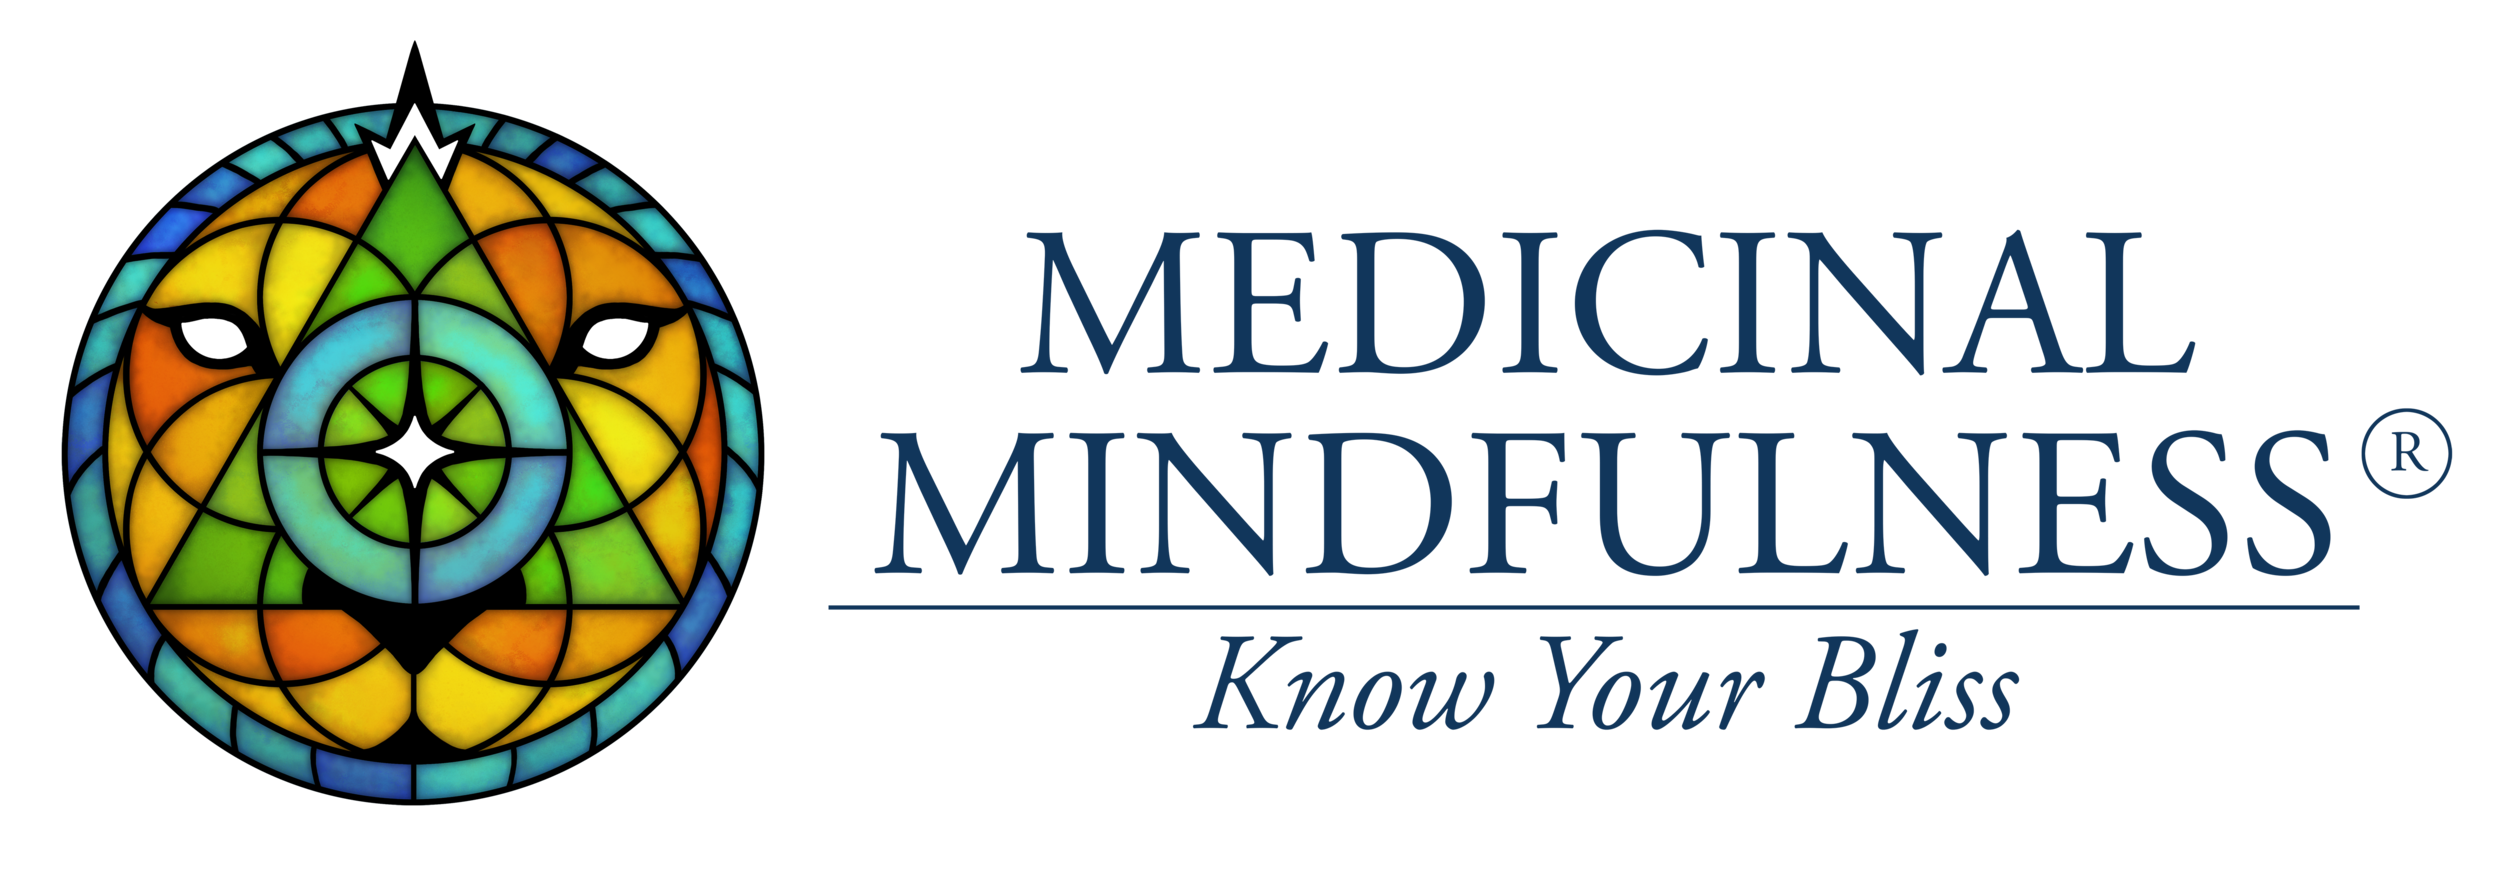 center-for-medicinal-mindfulness-psychedelic-cannabis-.png